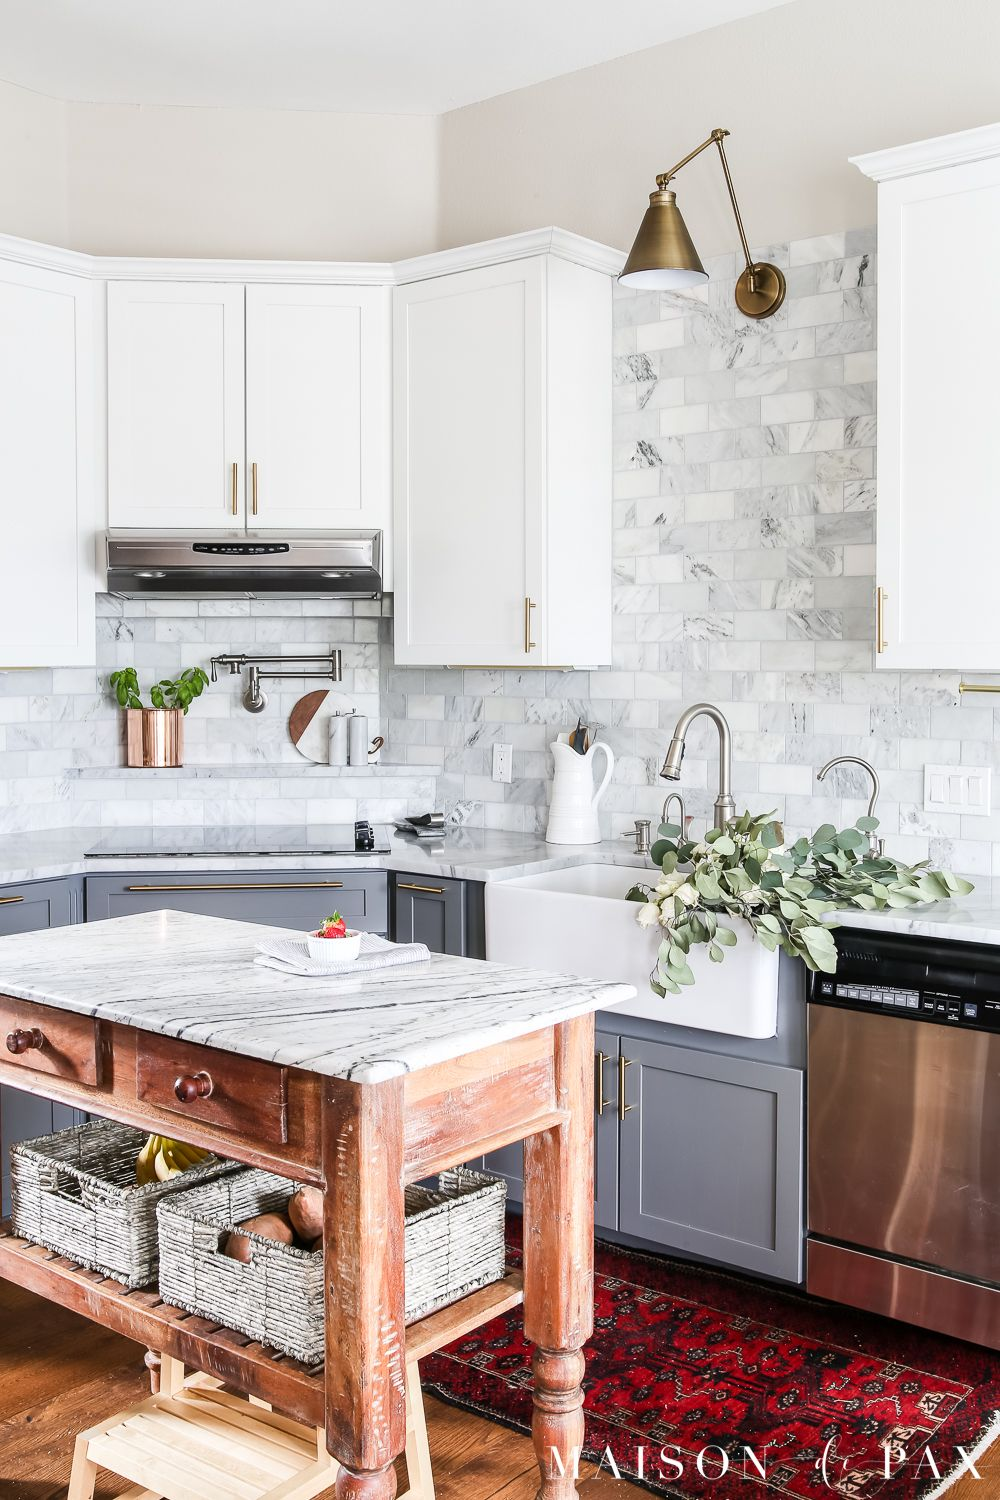 Spring kitchen refresh get 5 easy tips to spruce up your kitchen for spring without